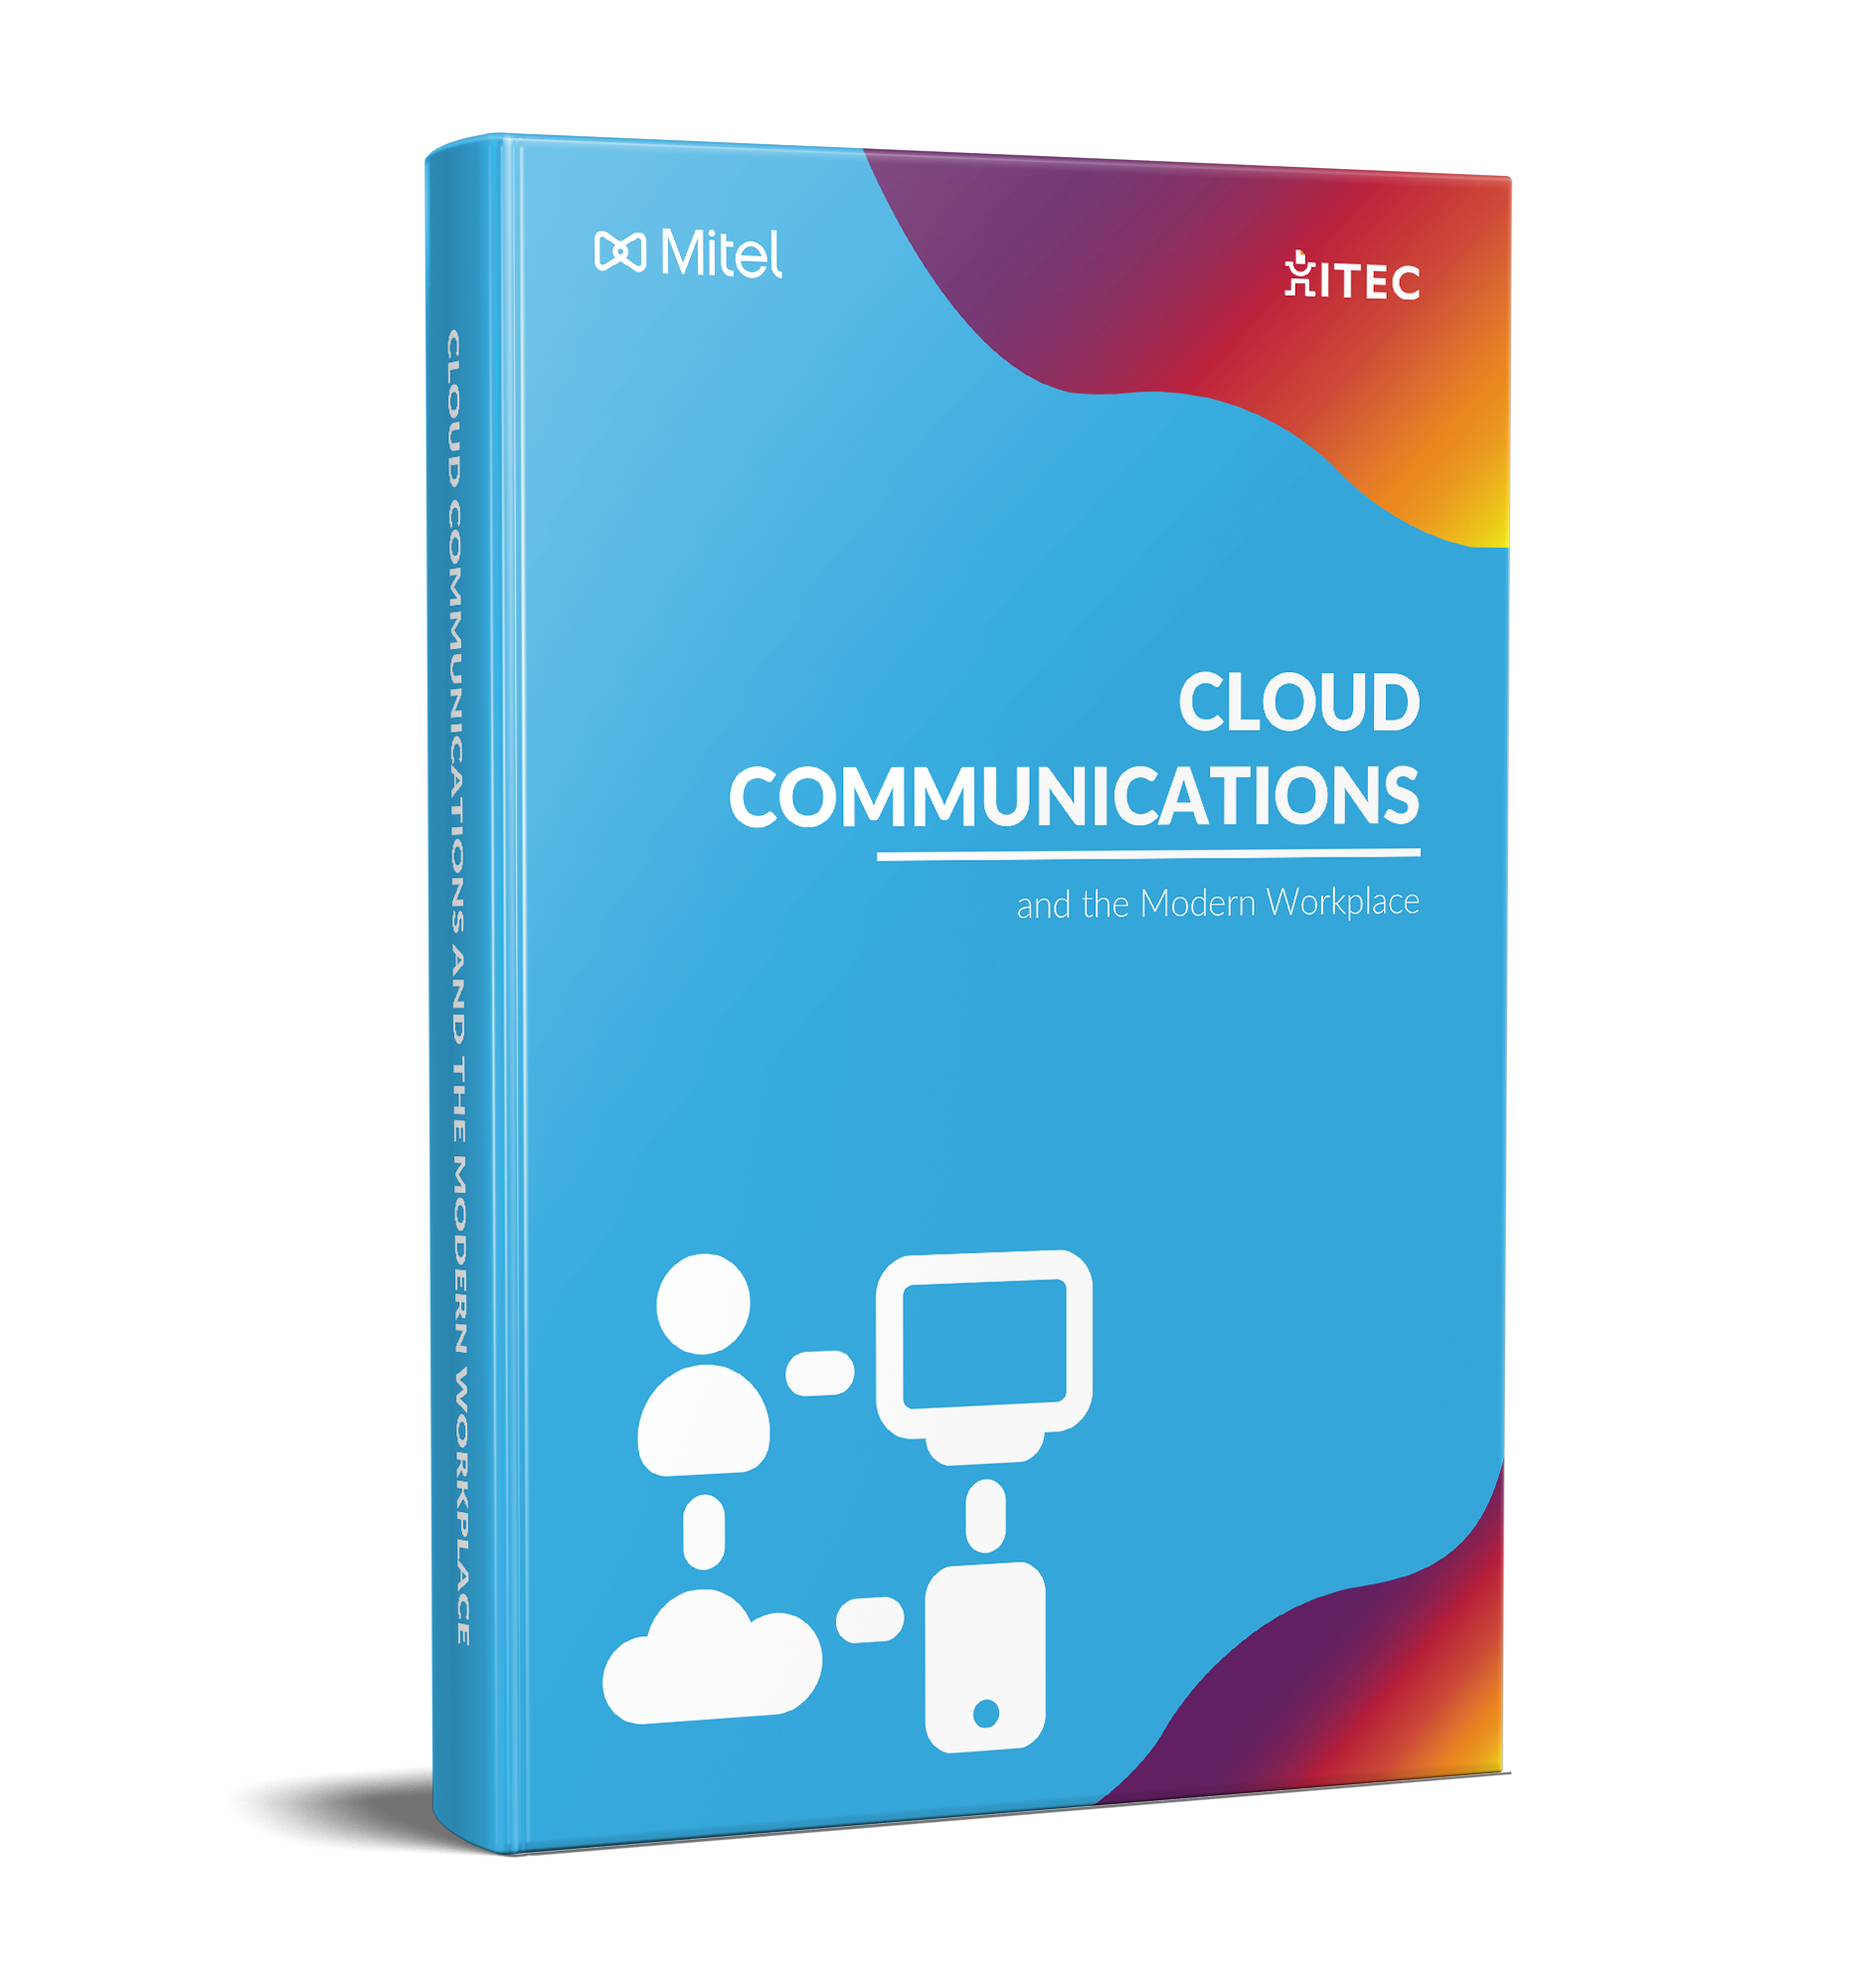 CLOUD-COMMUNICATIONS-AND-THE-MODERN-WORKPLACE